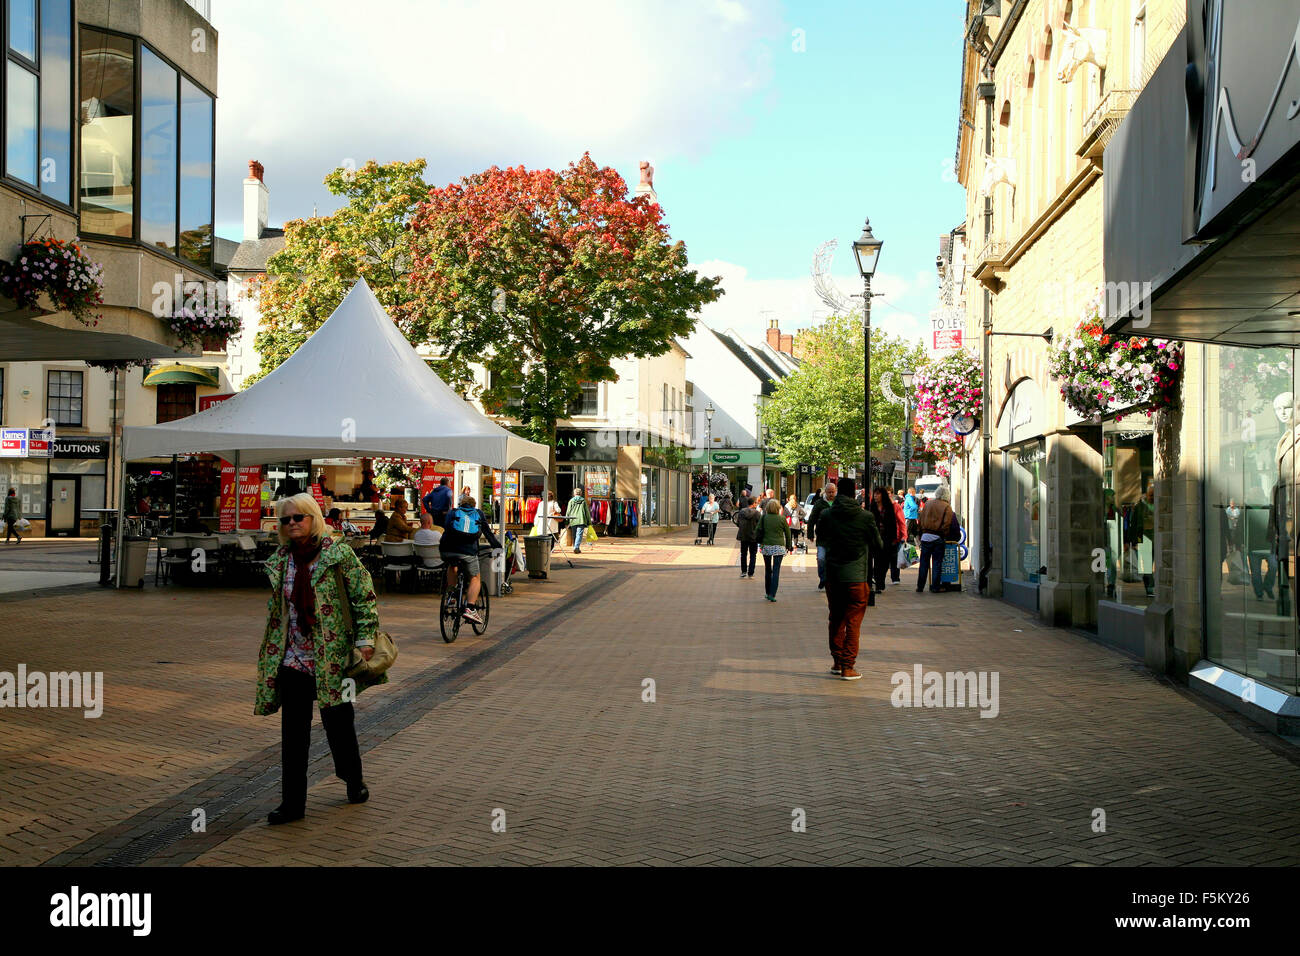 The pedestrianized shopping street in Autumn of West Gate at Mansfield in Nottinghamshire, UK. - Stock Image